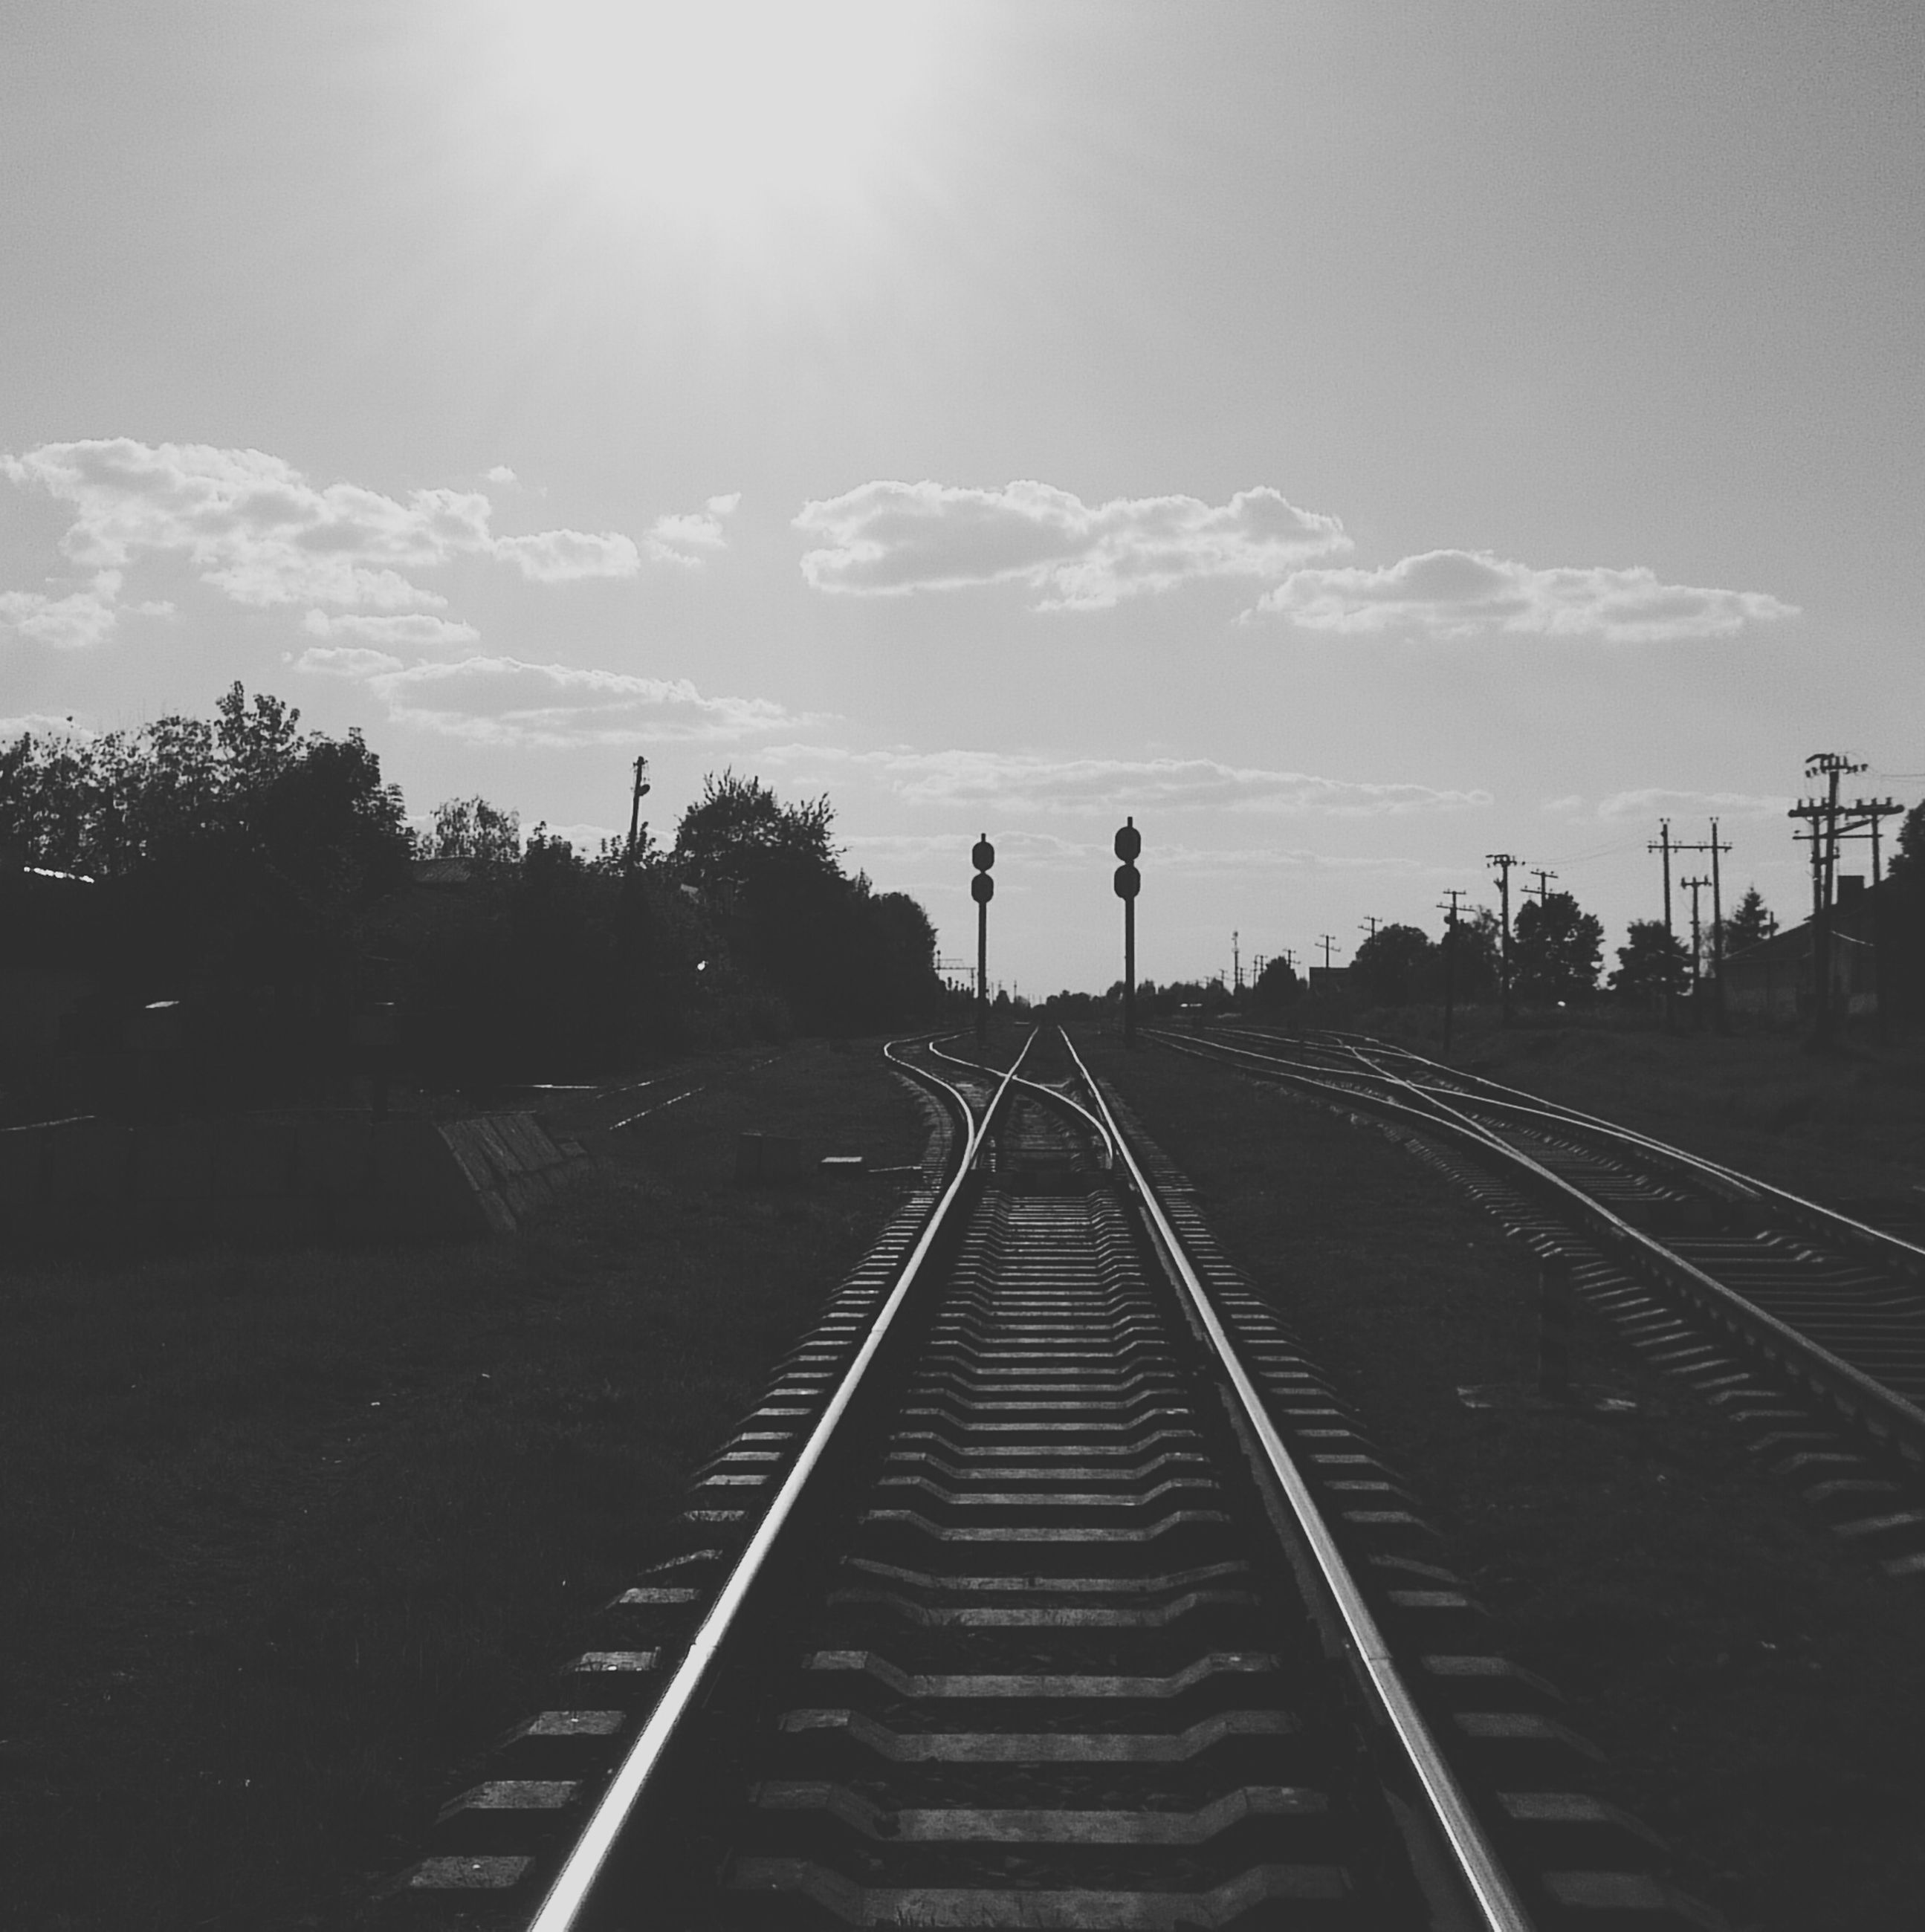 the way forward, railroad track, sky, vanishing point, diminishing perspective, transportation, sun, sunlight, rail transportation, sunbeam, cloud - sky, lens flare, cloud, tree, outdoors, nature, day, sunset, tranquility, long